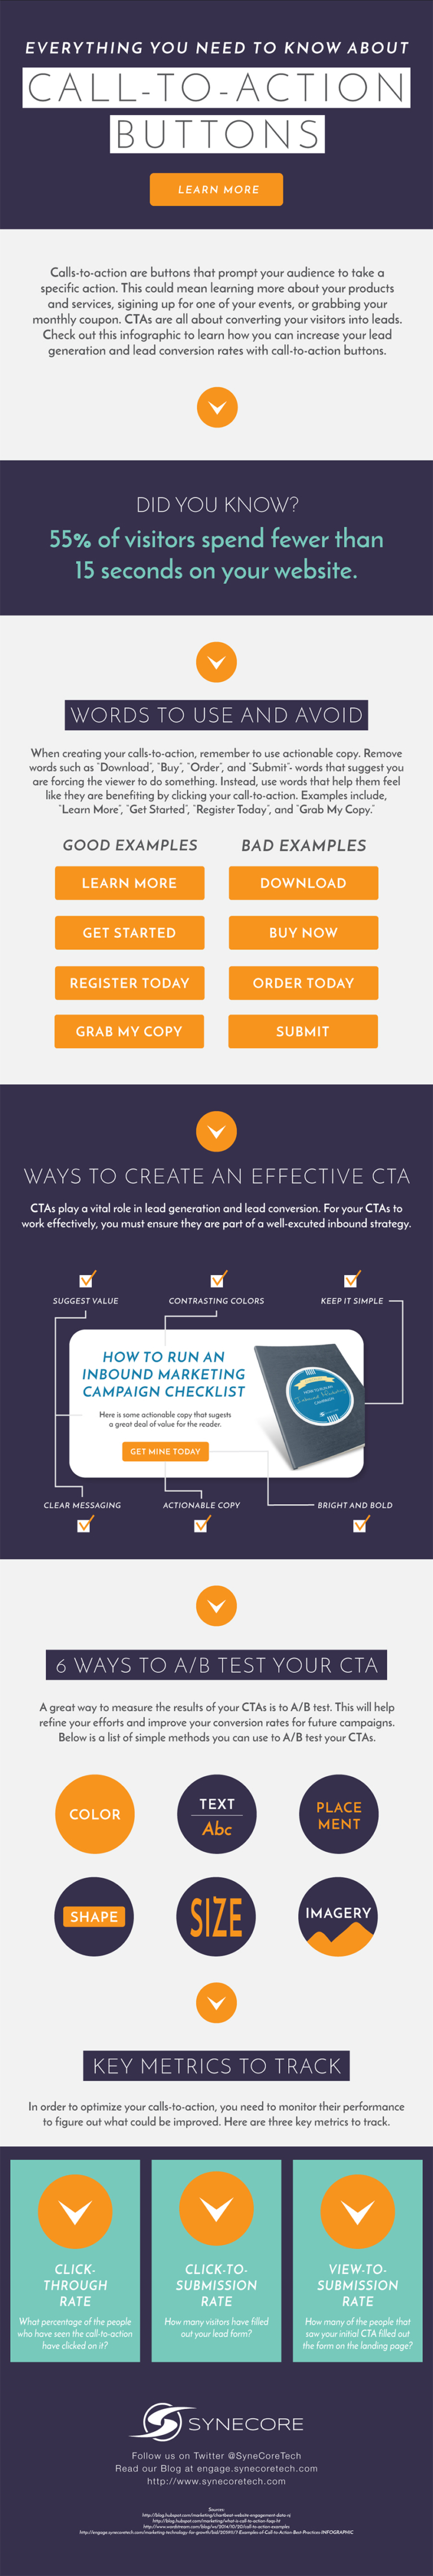 The Best and Worst Words to Use in Your Website Call to Action Buttons [Infographic]                      | Social Media Today